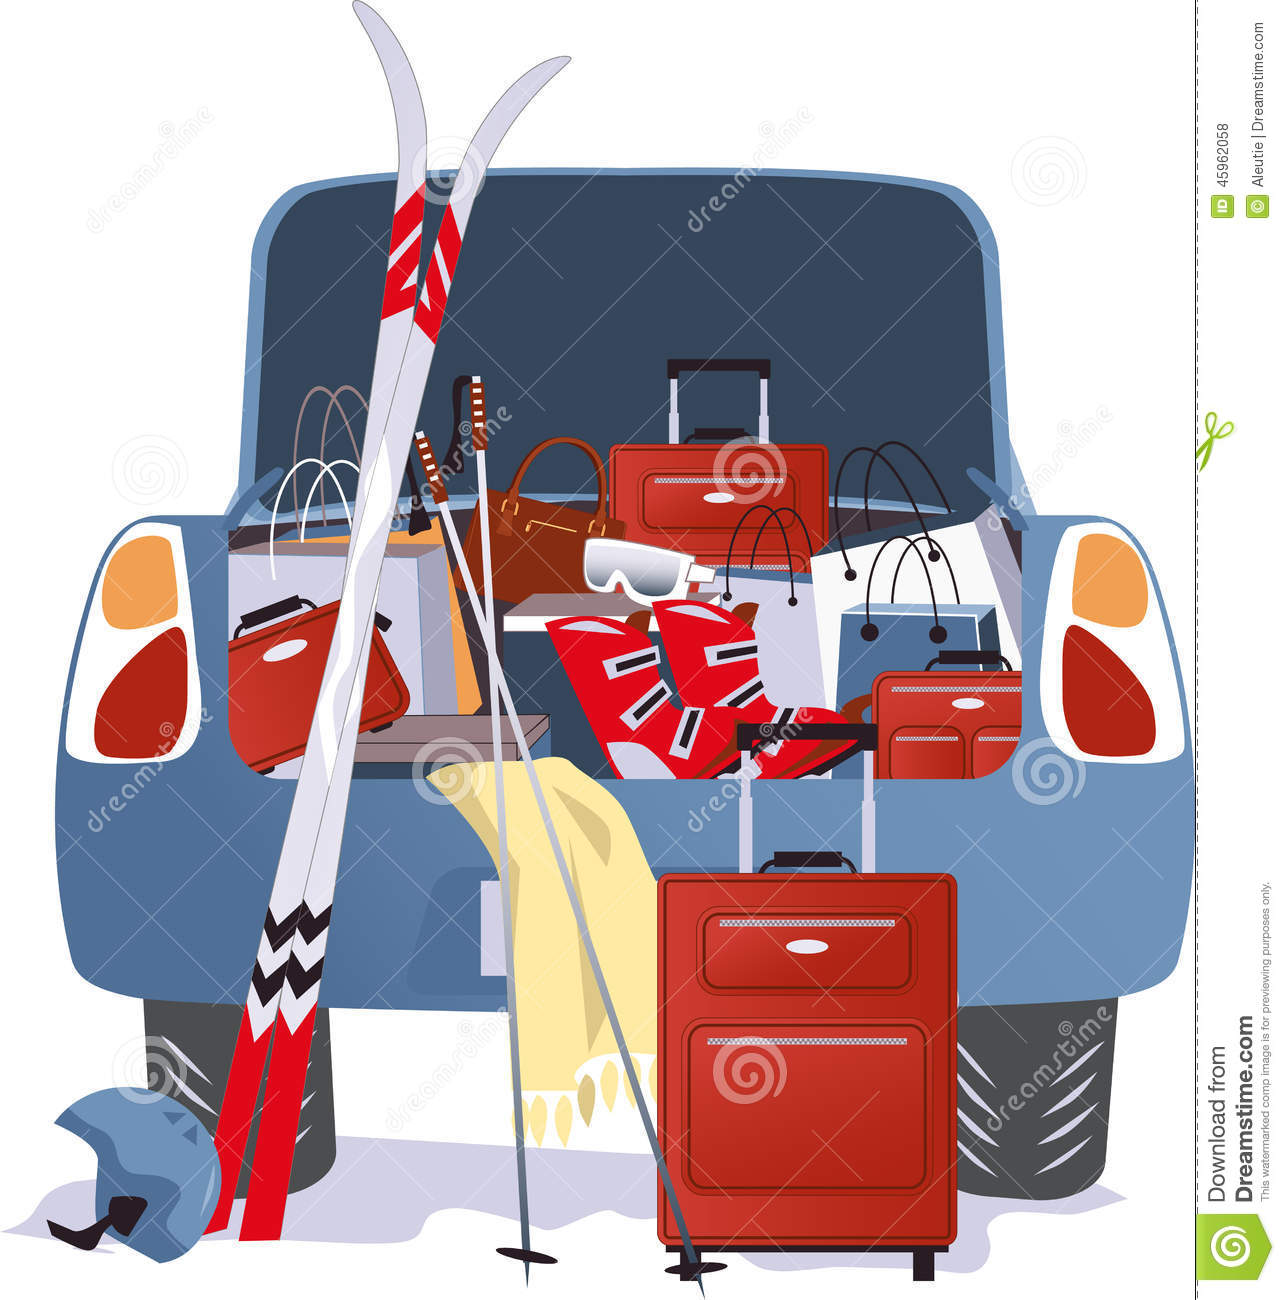 Car packed for a ski trip